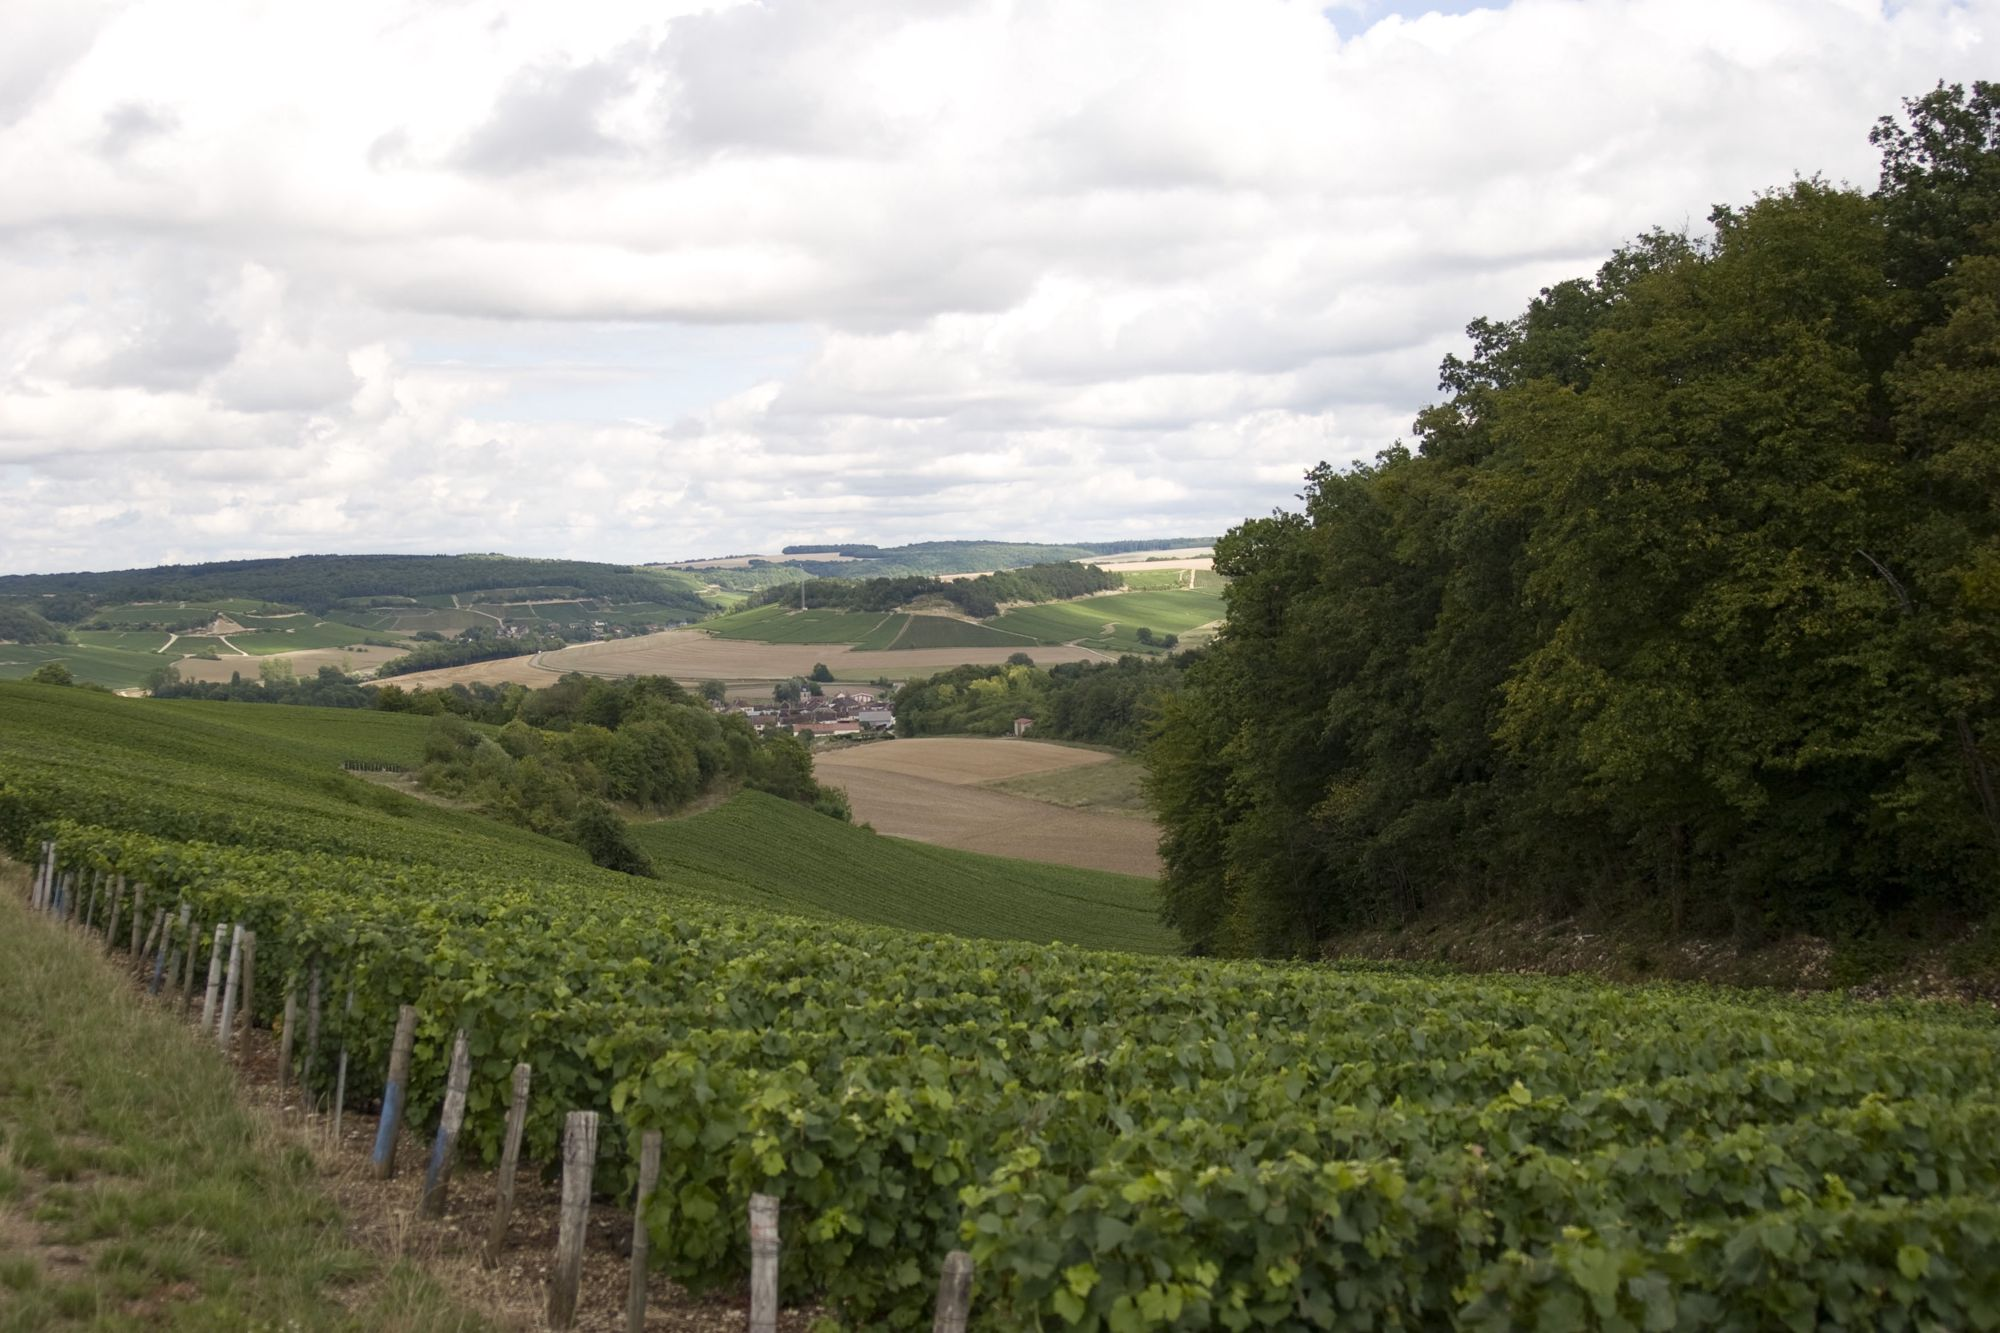 As any red-nosed soul will expound between hiccups, France has a somewhat well-deserved reputation for its wine.